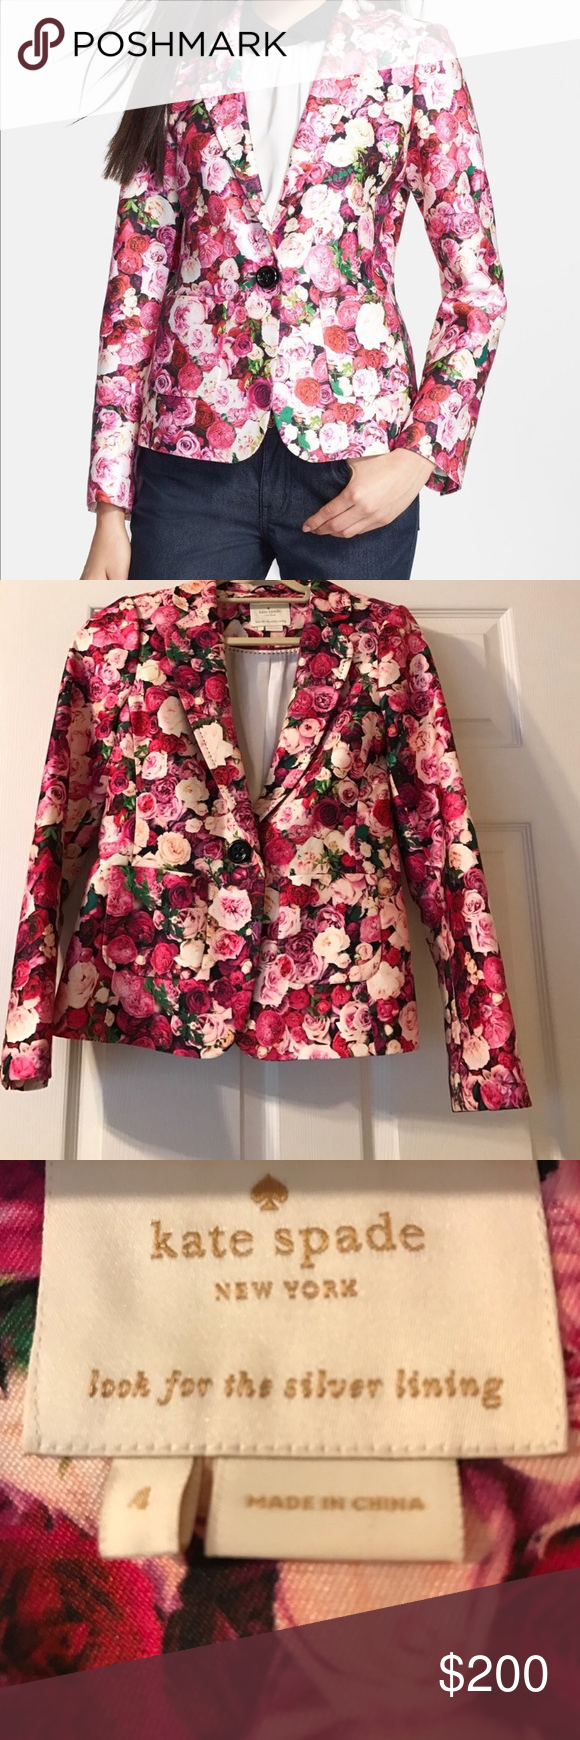 485ae498 Kate spade Millie blazer Beautiful rose print blazer with hand stitching.  Most famous kate spade collection. In excellent condition.